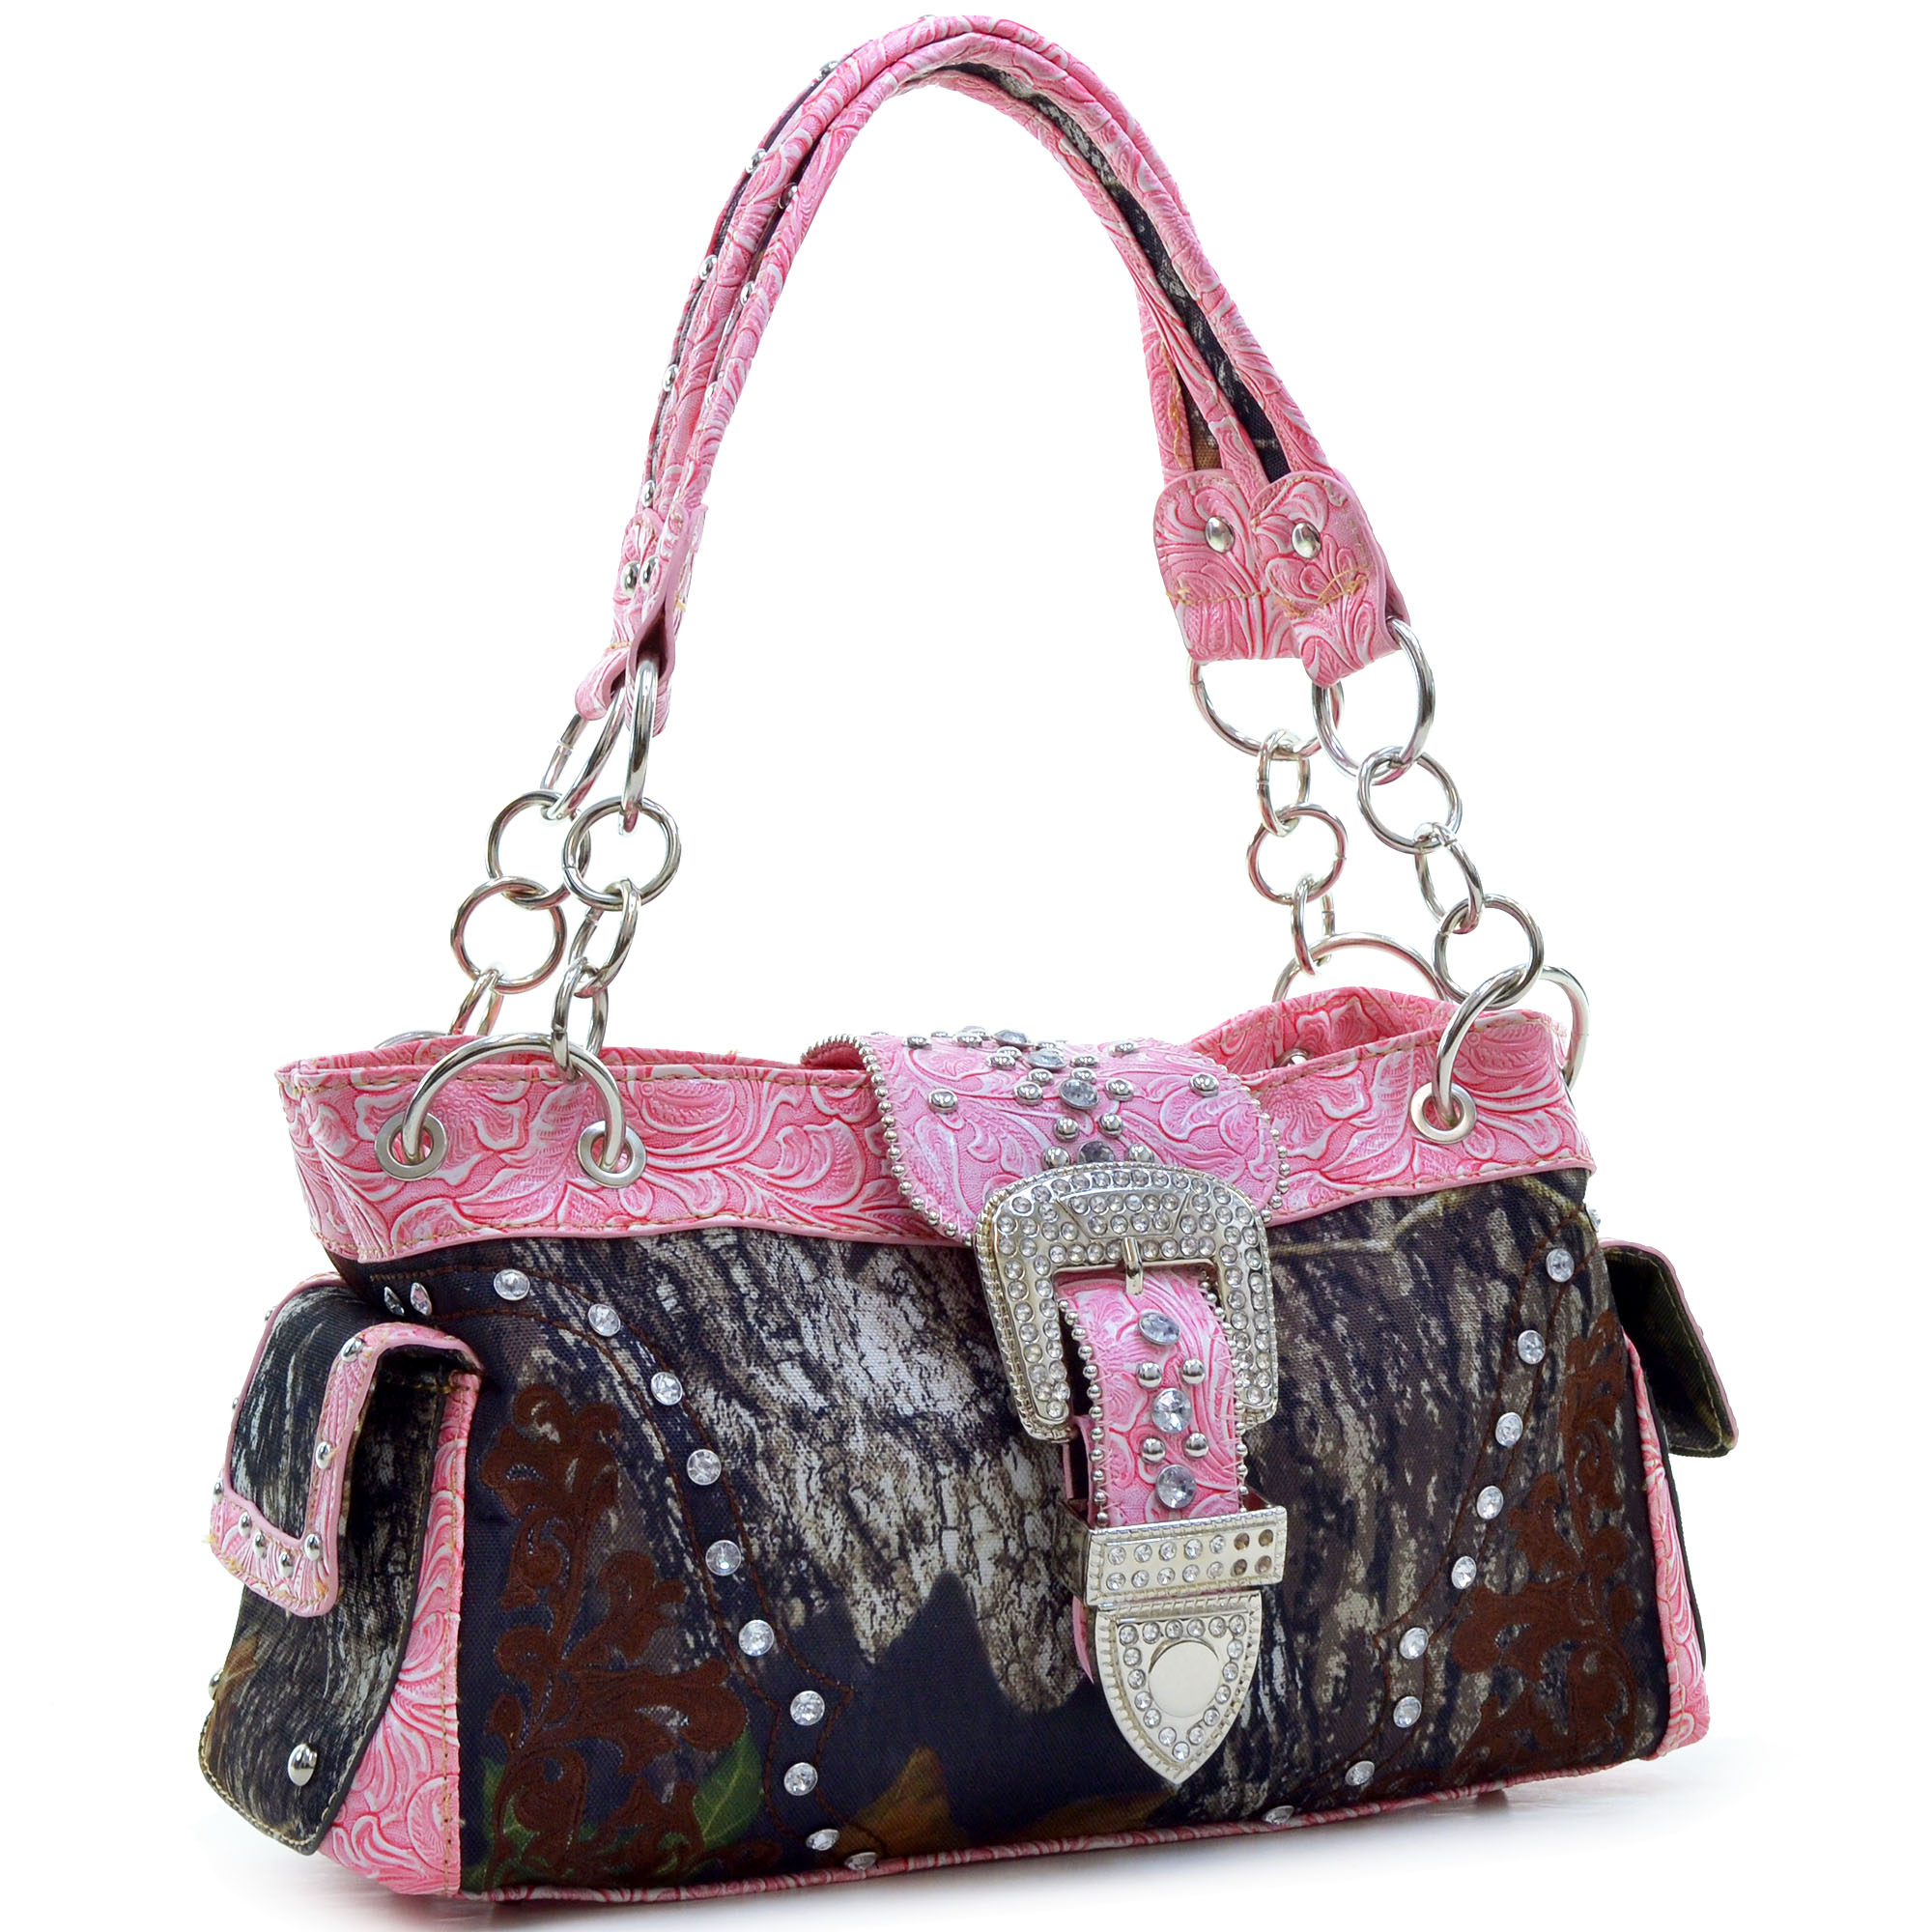 Mossy Oak® Faux Leather Floral Embroidered & Western Stitched Rhinestone Buckle Bag